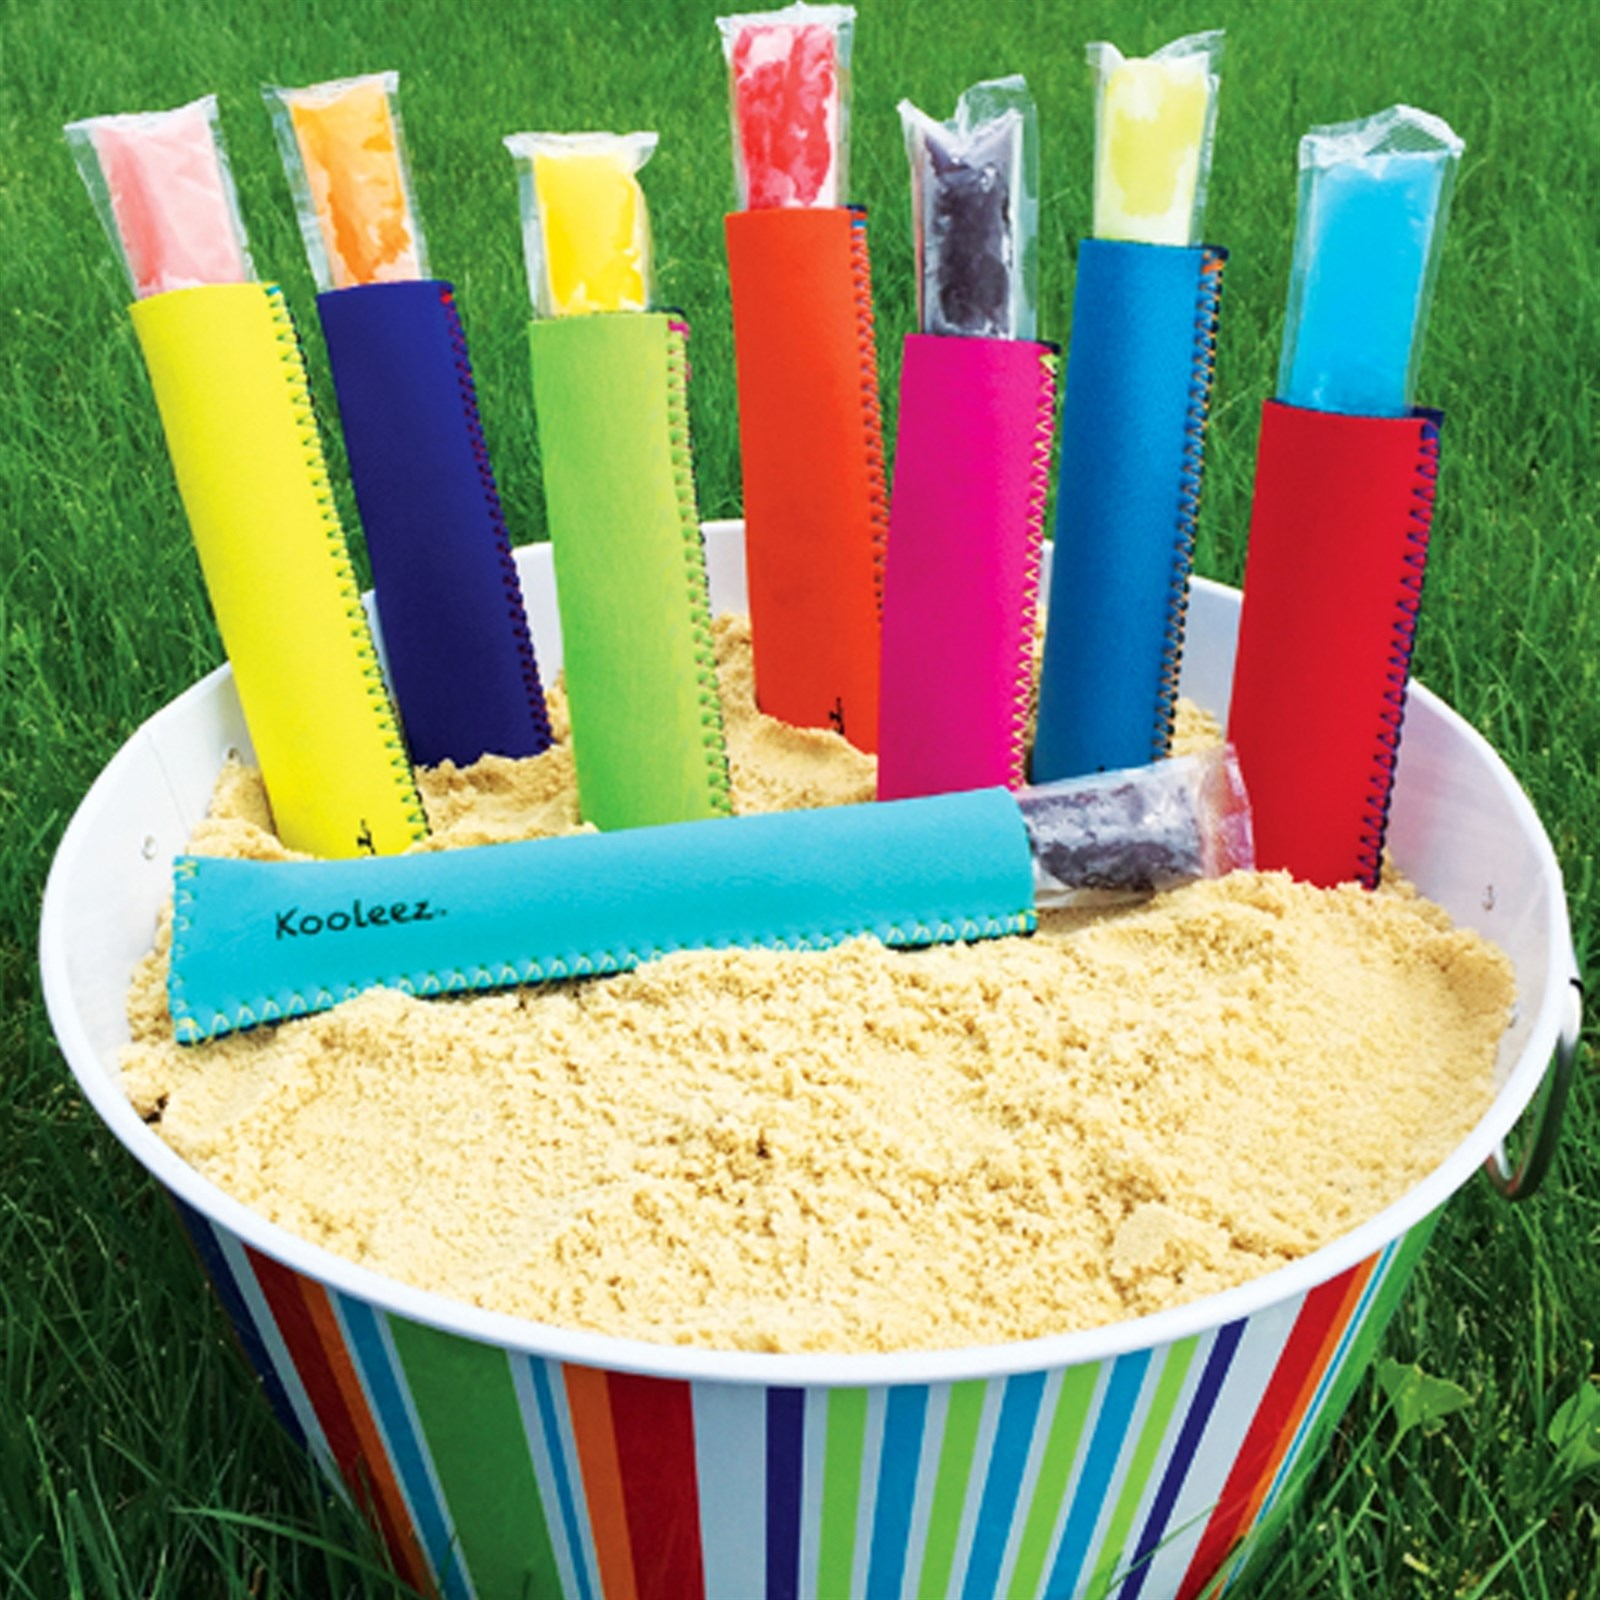 Kooleez Ice Pop Sleeves / 8 Pack Only $9.99 w/ Free Shipping